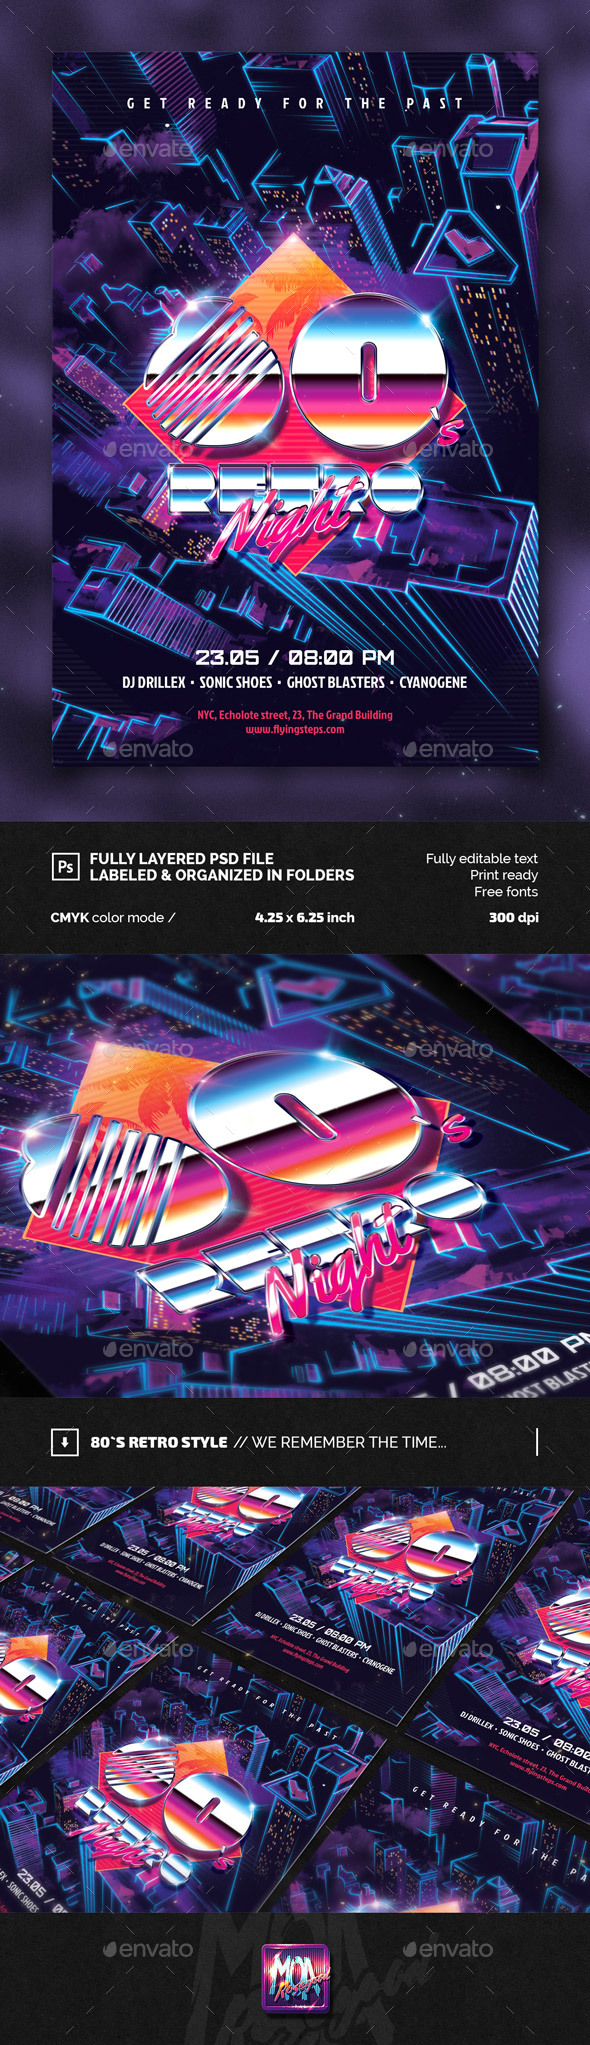 80`s Retro Night Party Flyer - Clubs & Parties Events